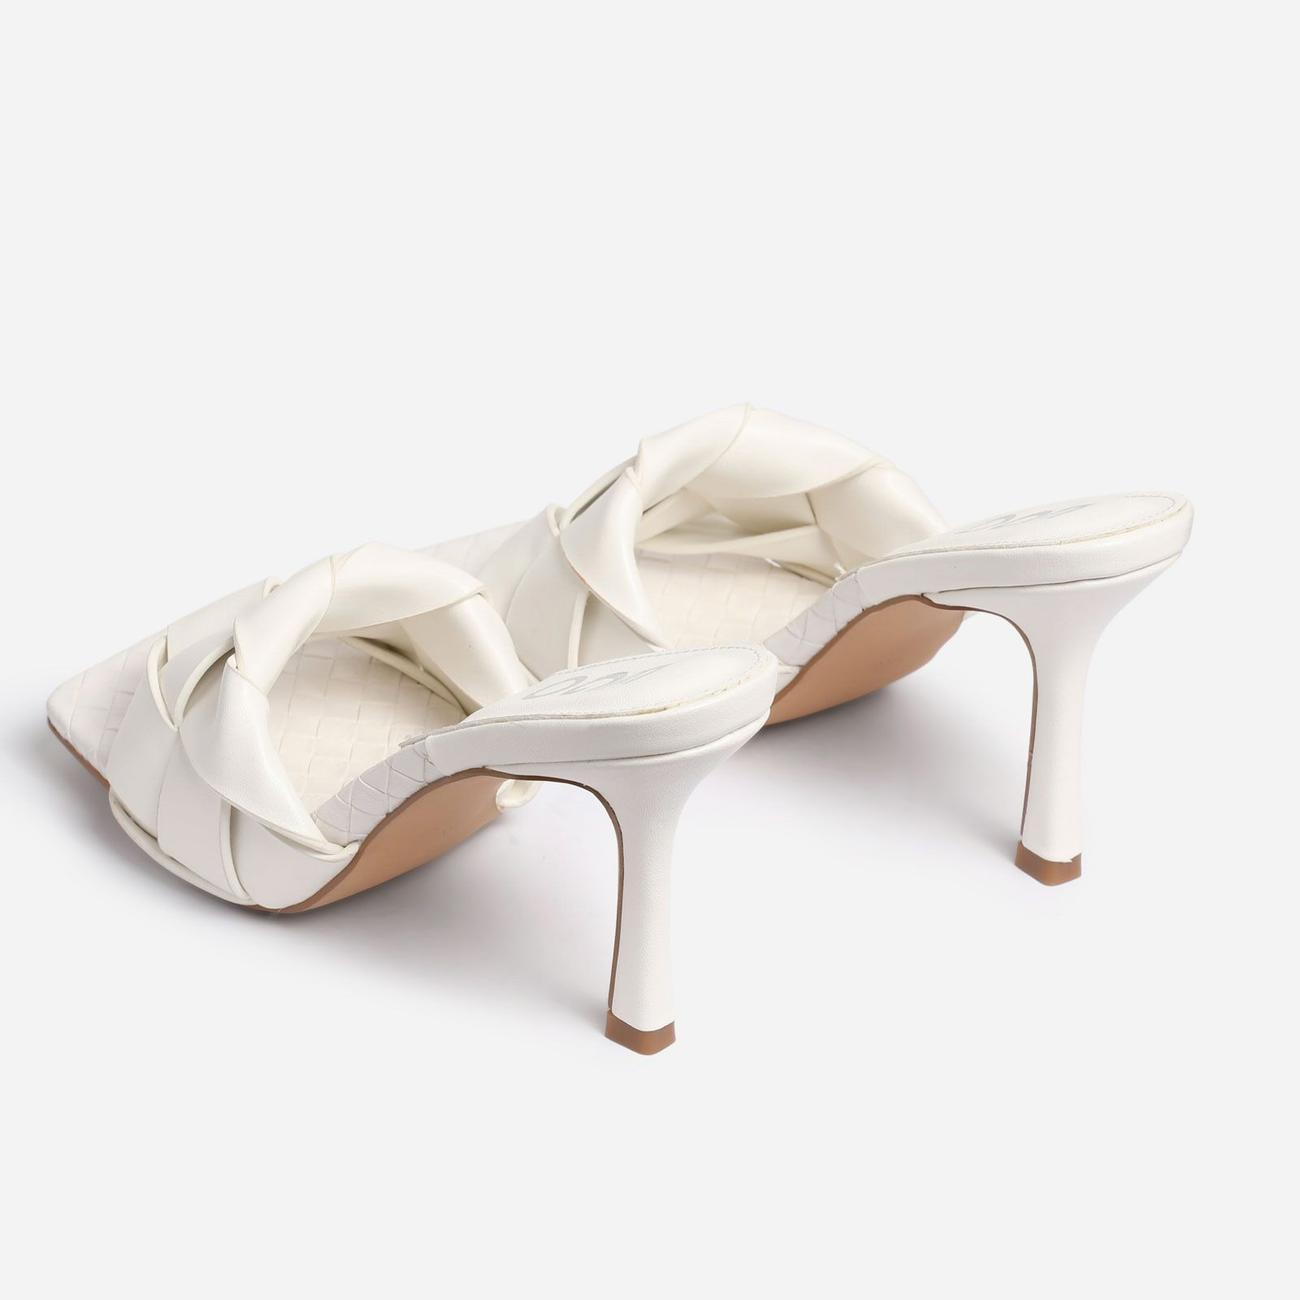 Turntup Woven Square Peep Toe Mule In White Faux Leather Image 3